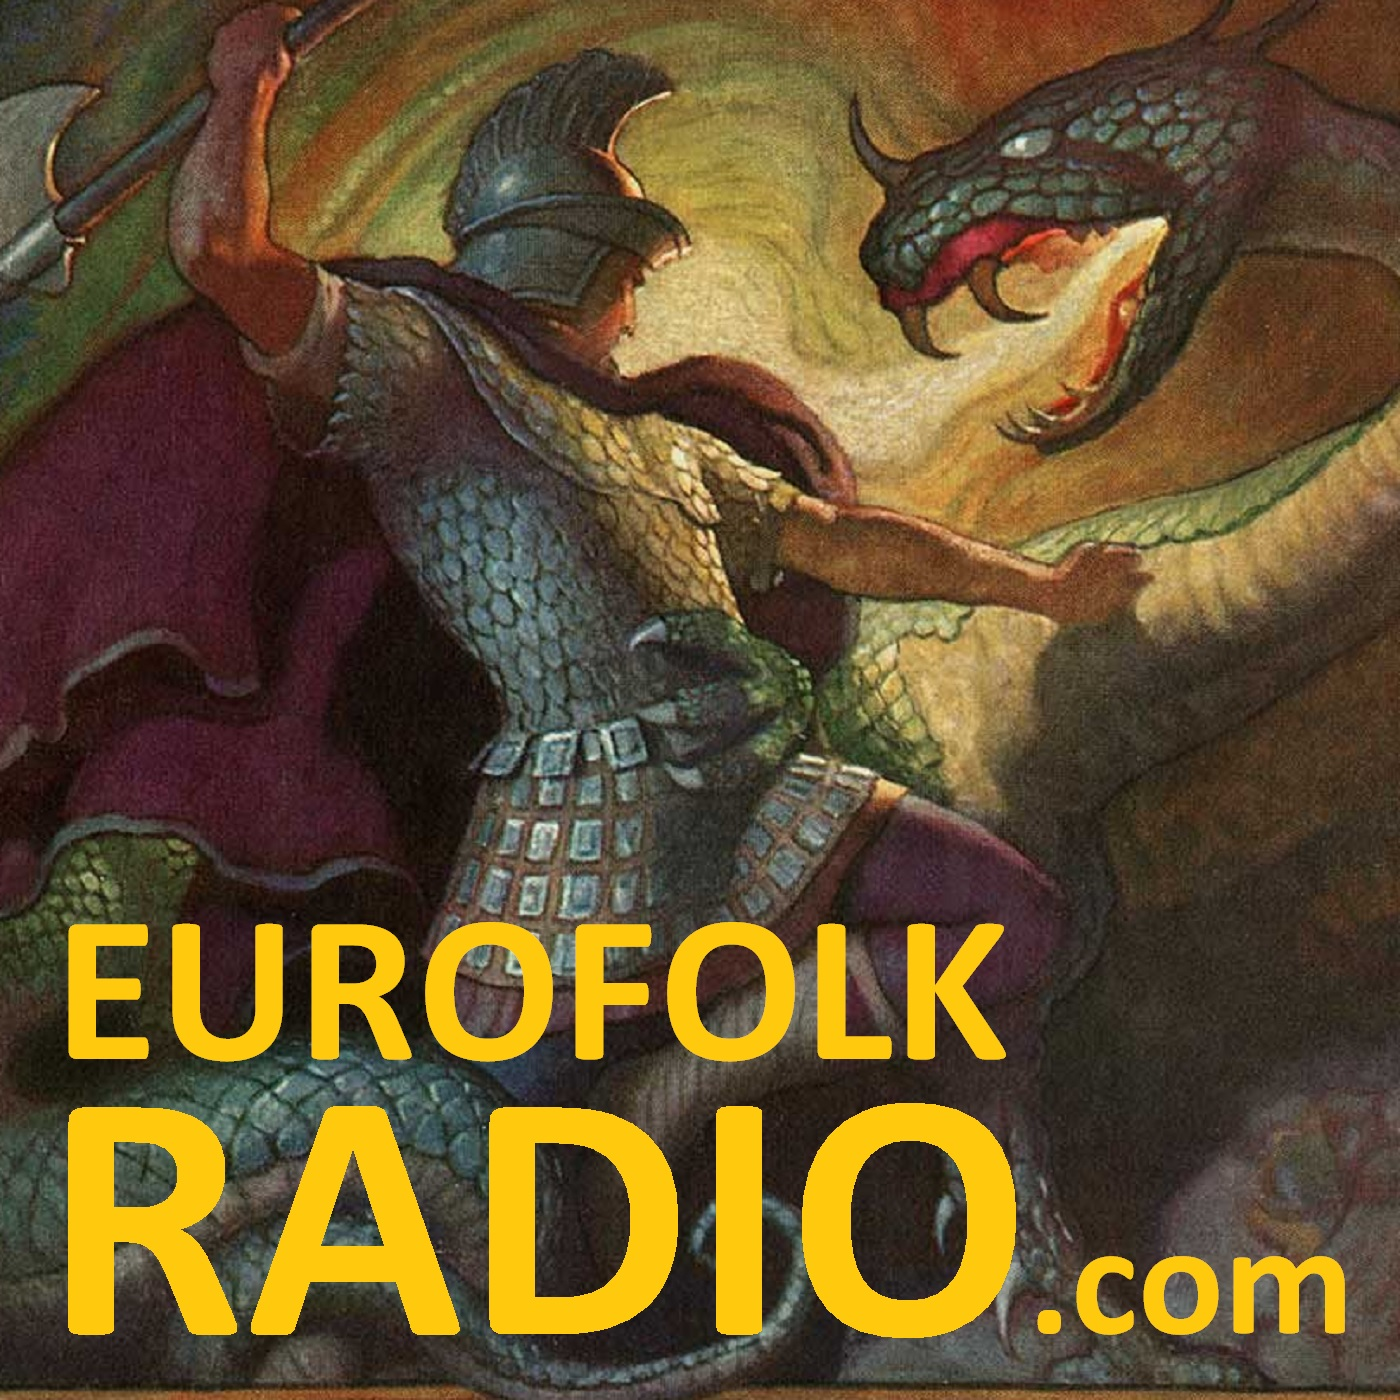 The Andrew Carrington Hitchcock Show (635) Paul English – The Invasion Of Europe Continues At Breakneck Speed